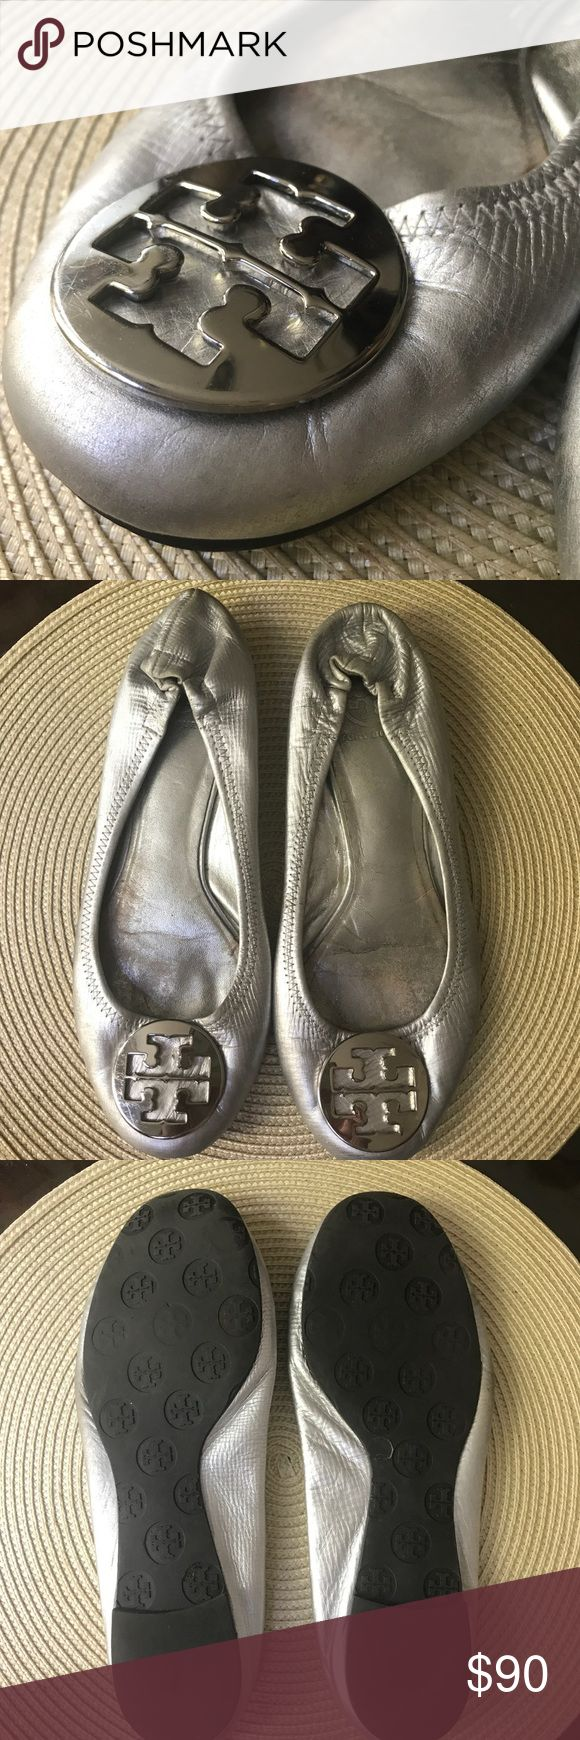 Tory Burch Silver Ballerina Flat Soft silver leather and signature Tory Burch emblem - authentic worn a couple times perfect otherwise. Size 10 fits 9.5 / 10 Tory Burch Shoes Flats & Loafers